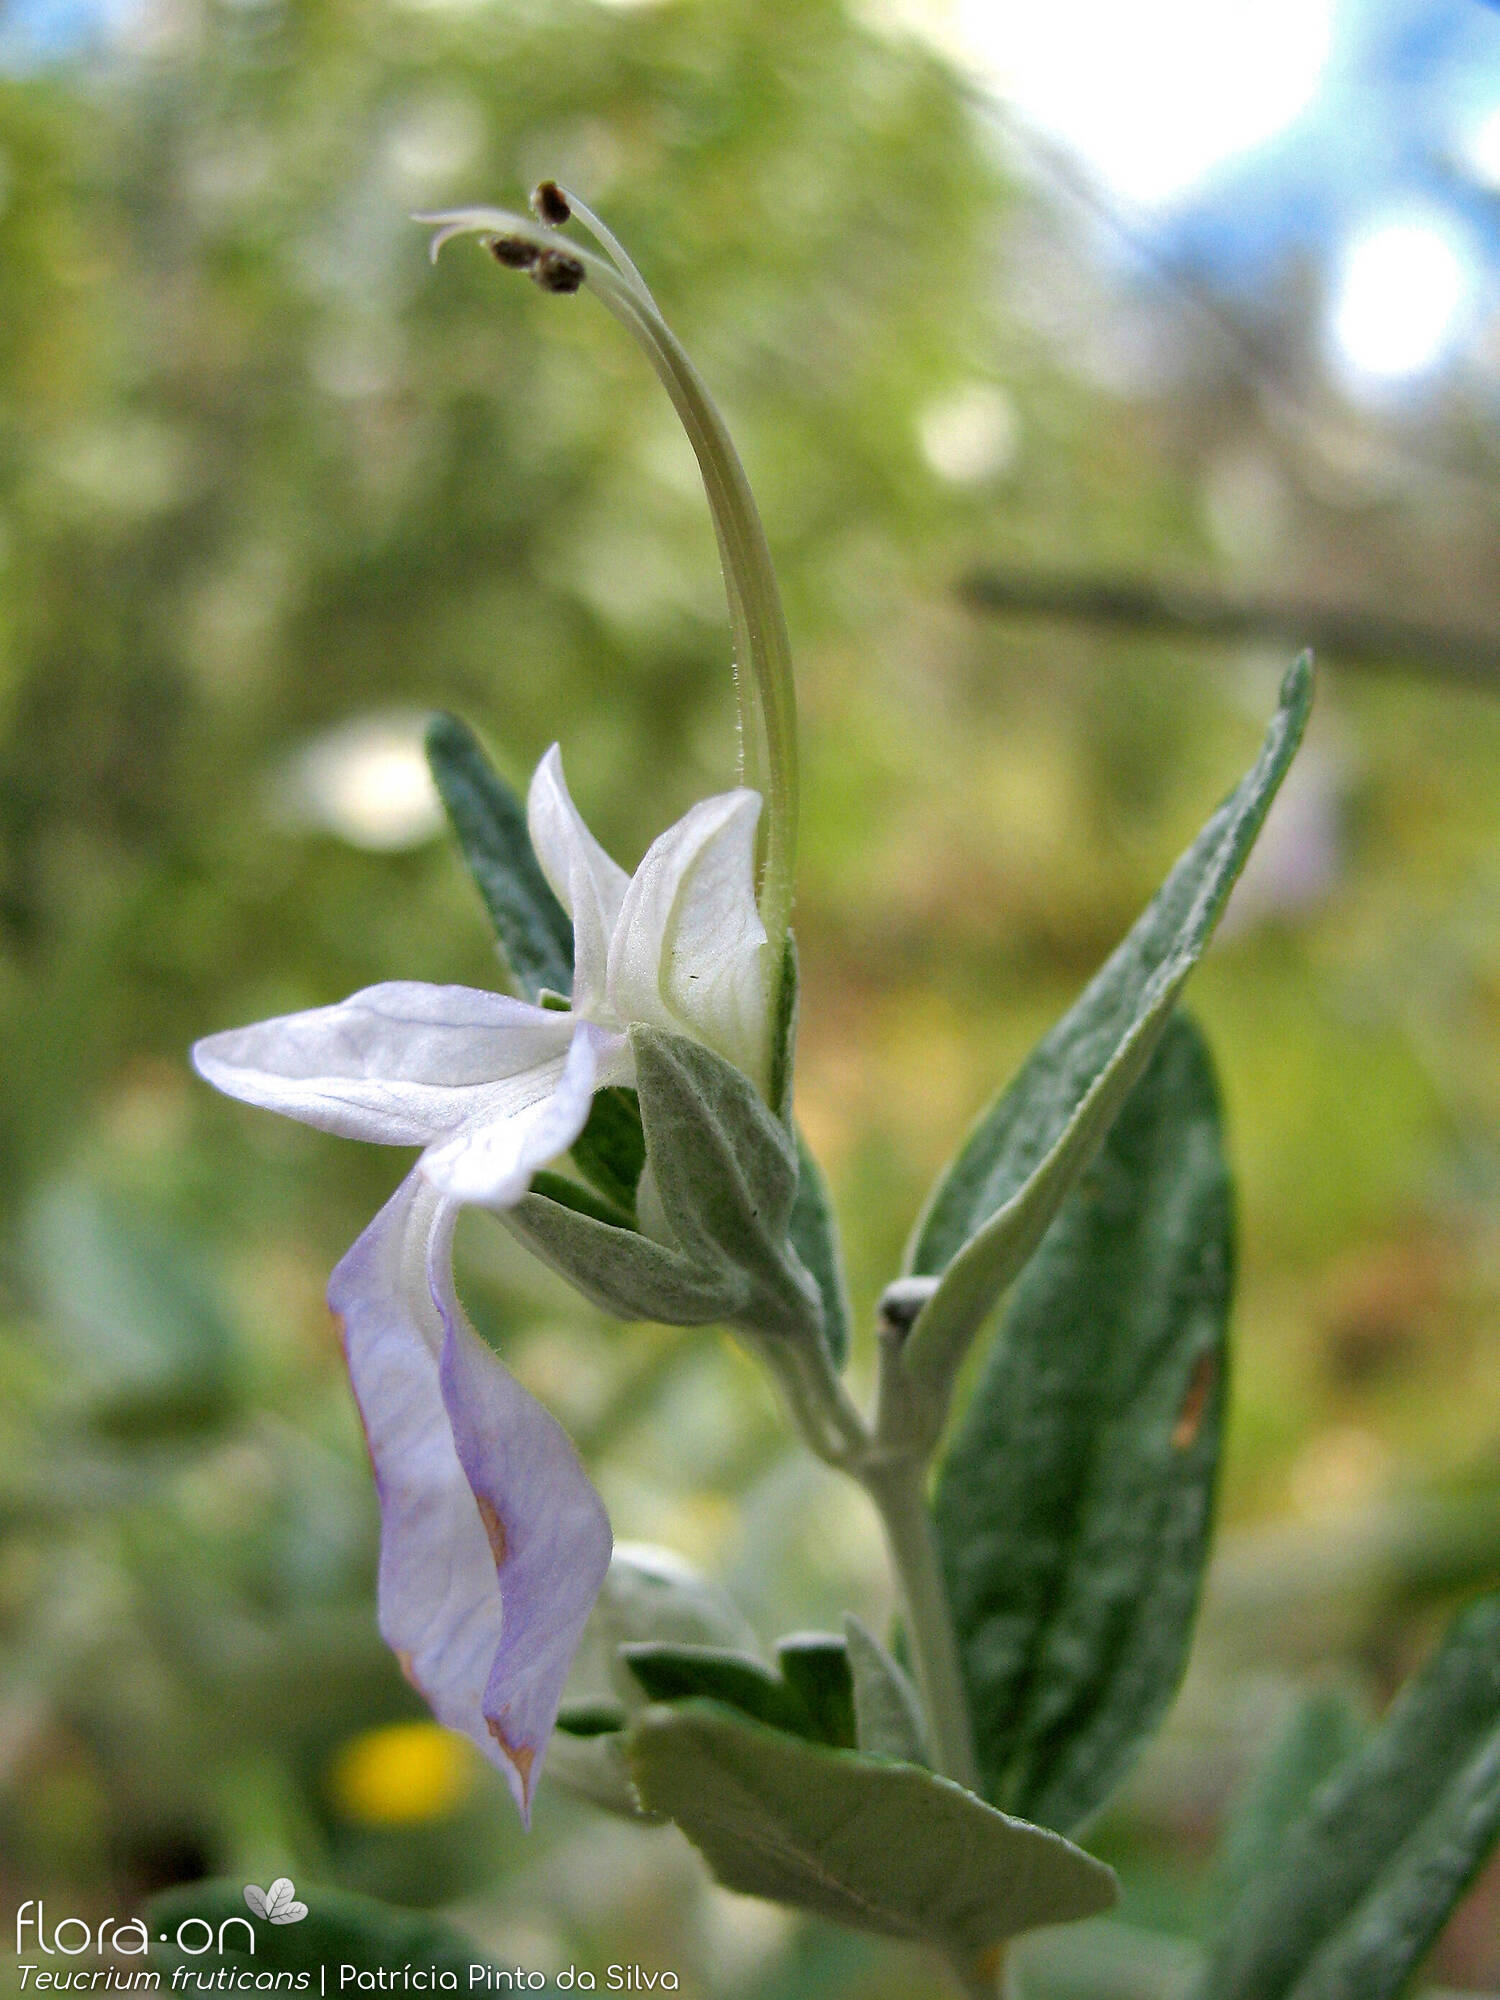 Teucrium fruticans - Flor (close-up) | Patrícia Pinto Silva; CC BY-NC 4.0